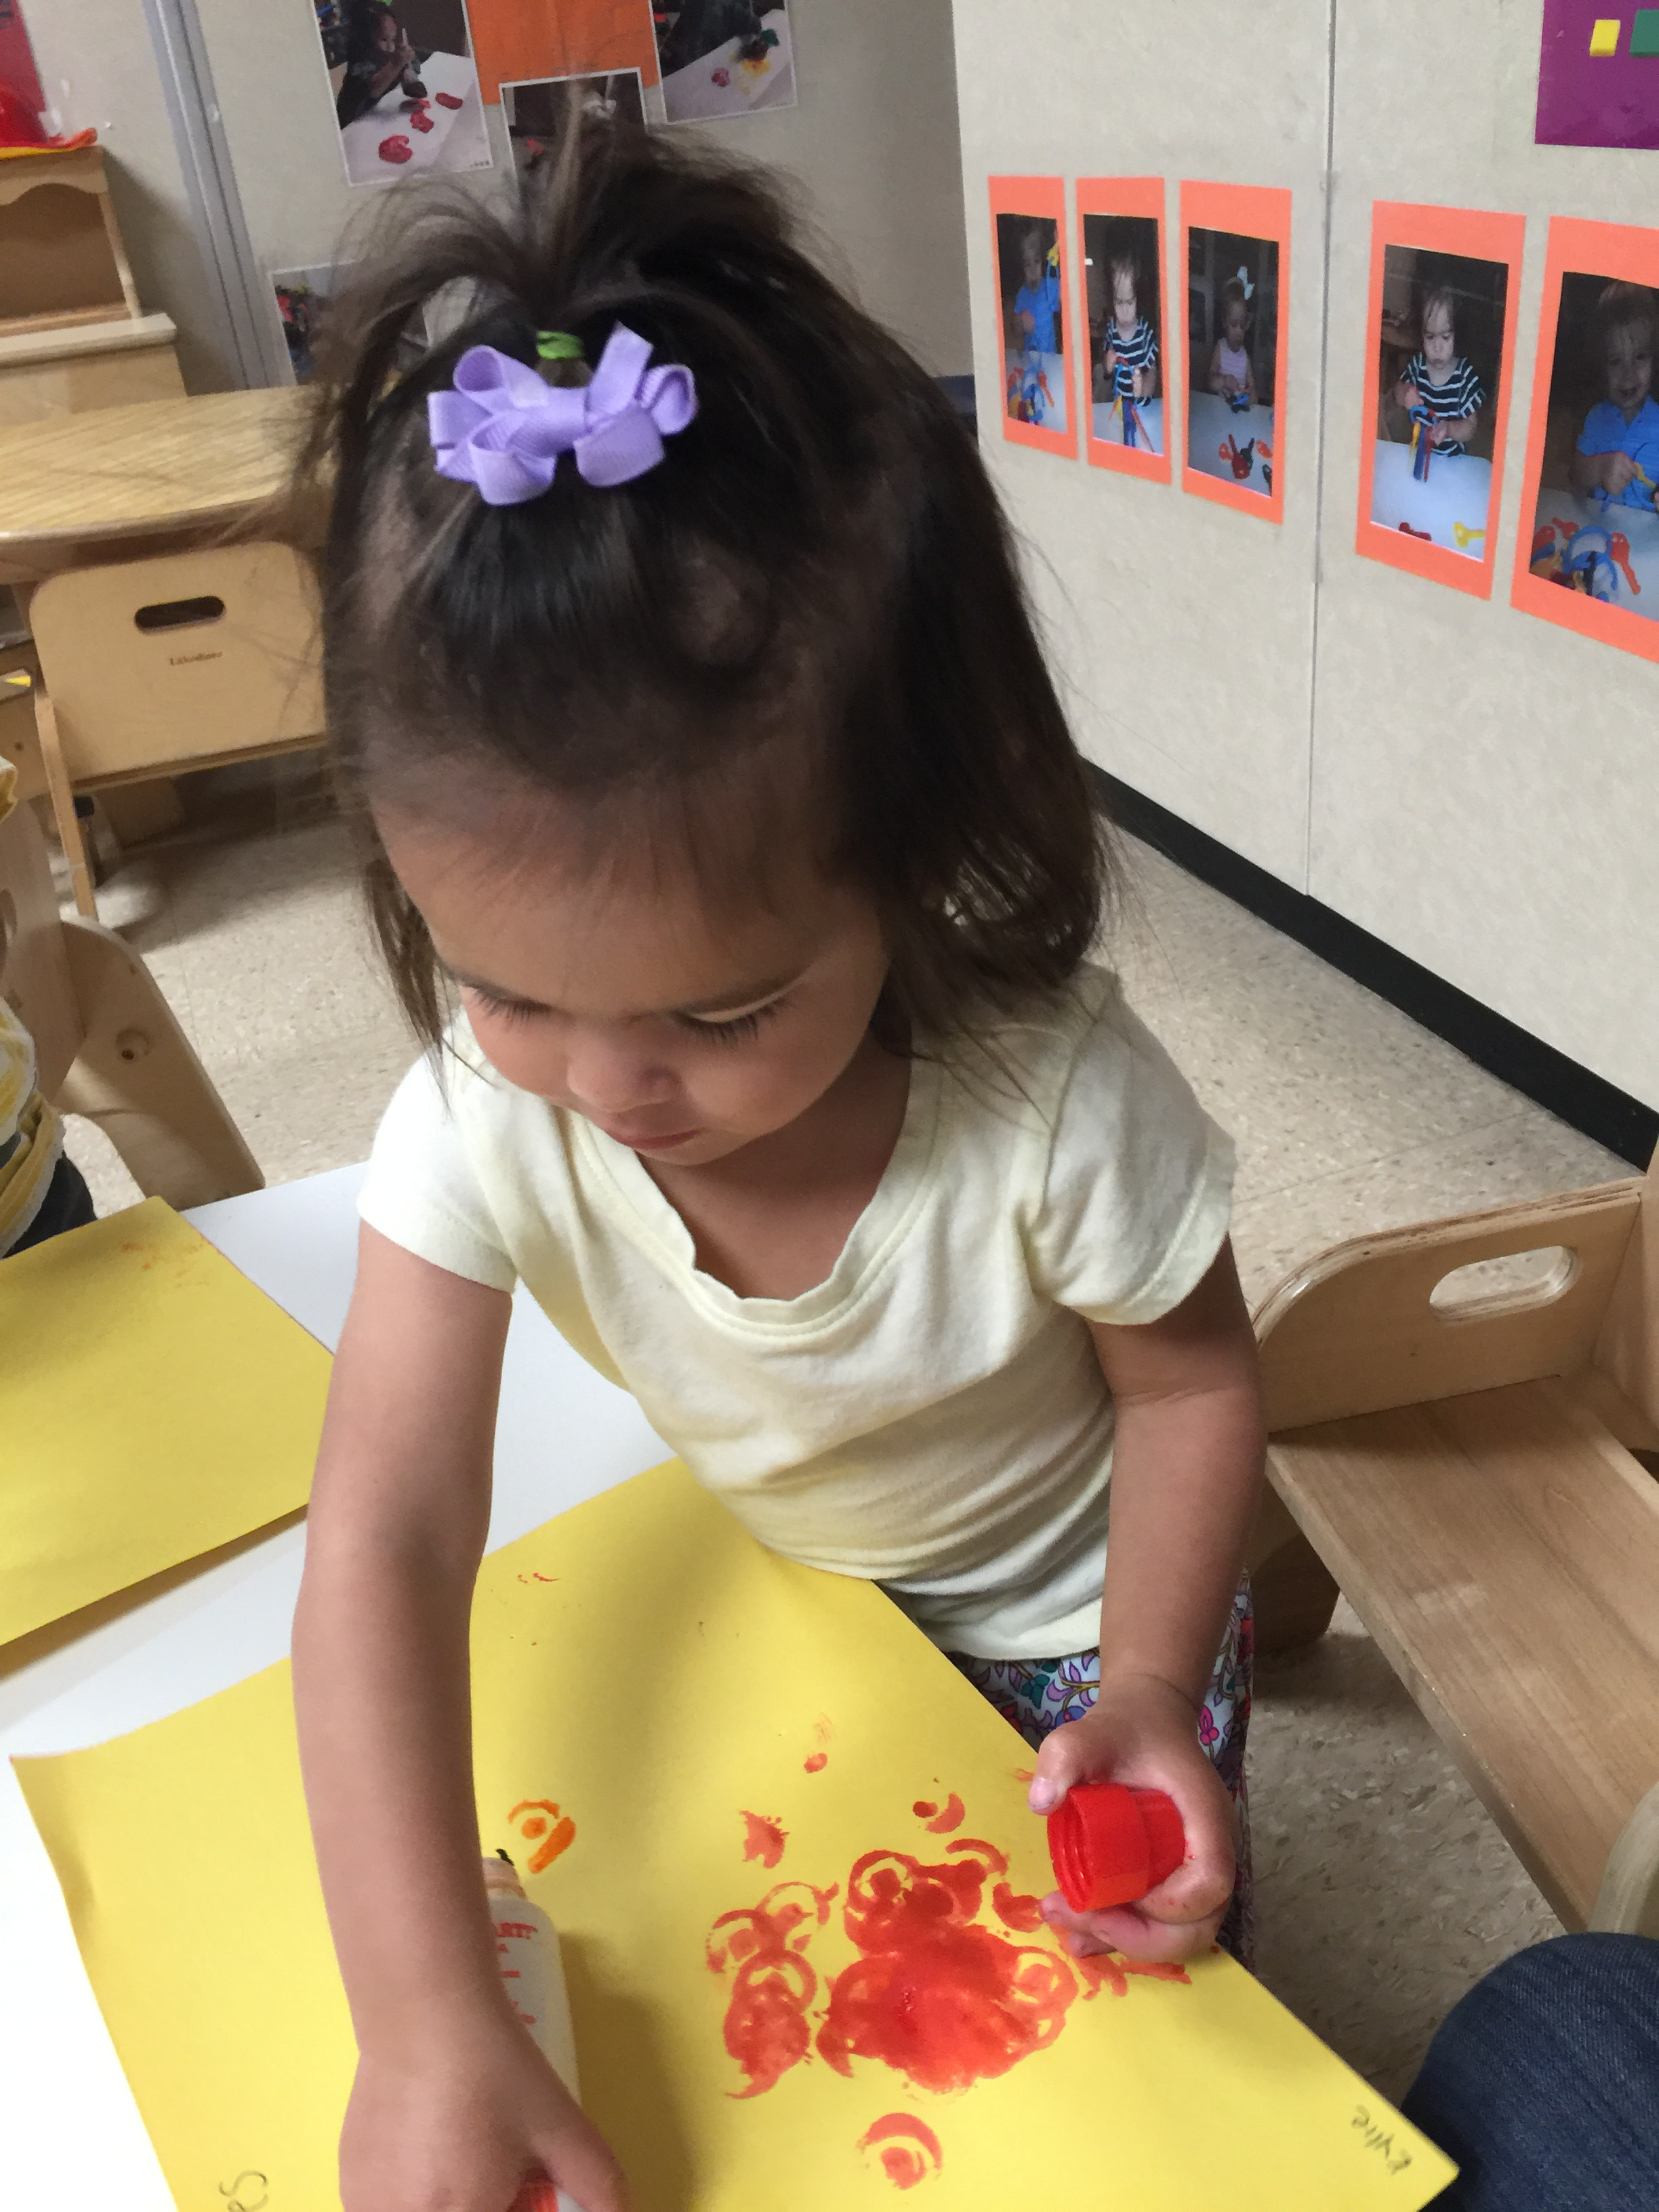 Our toddler room uses a variety of art materials to foster creative expression.